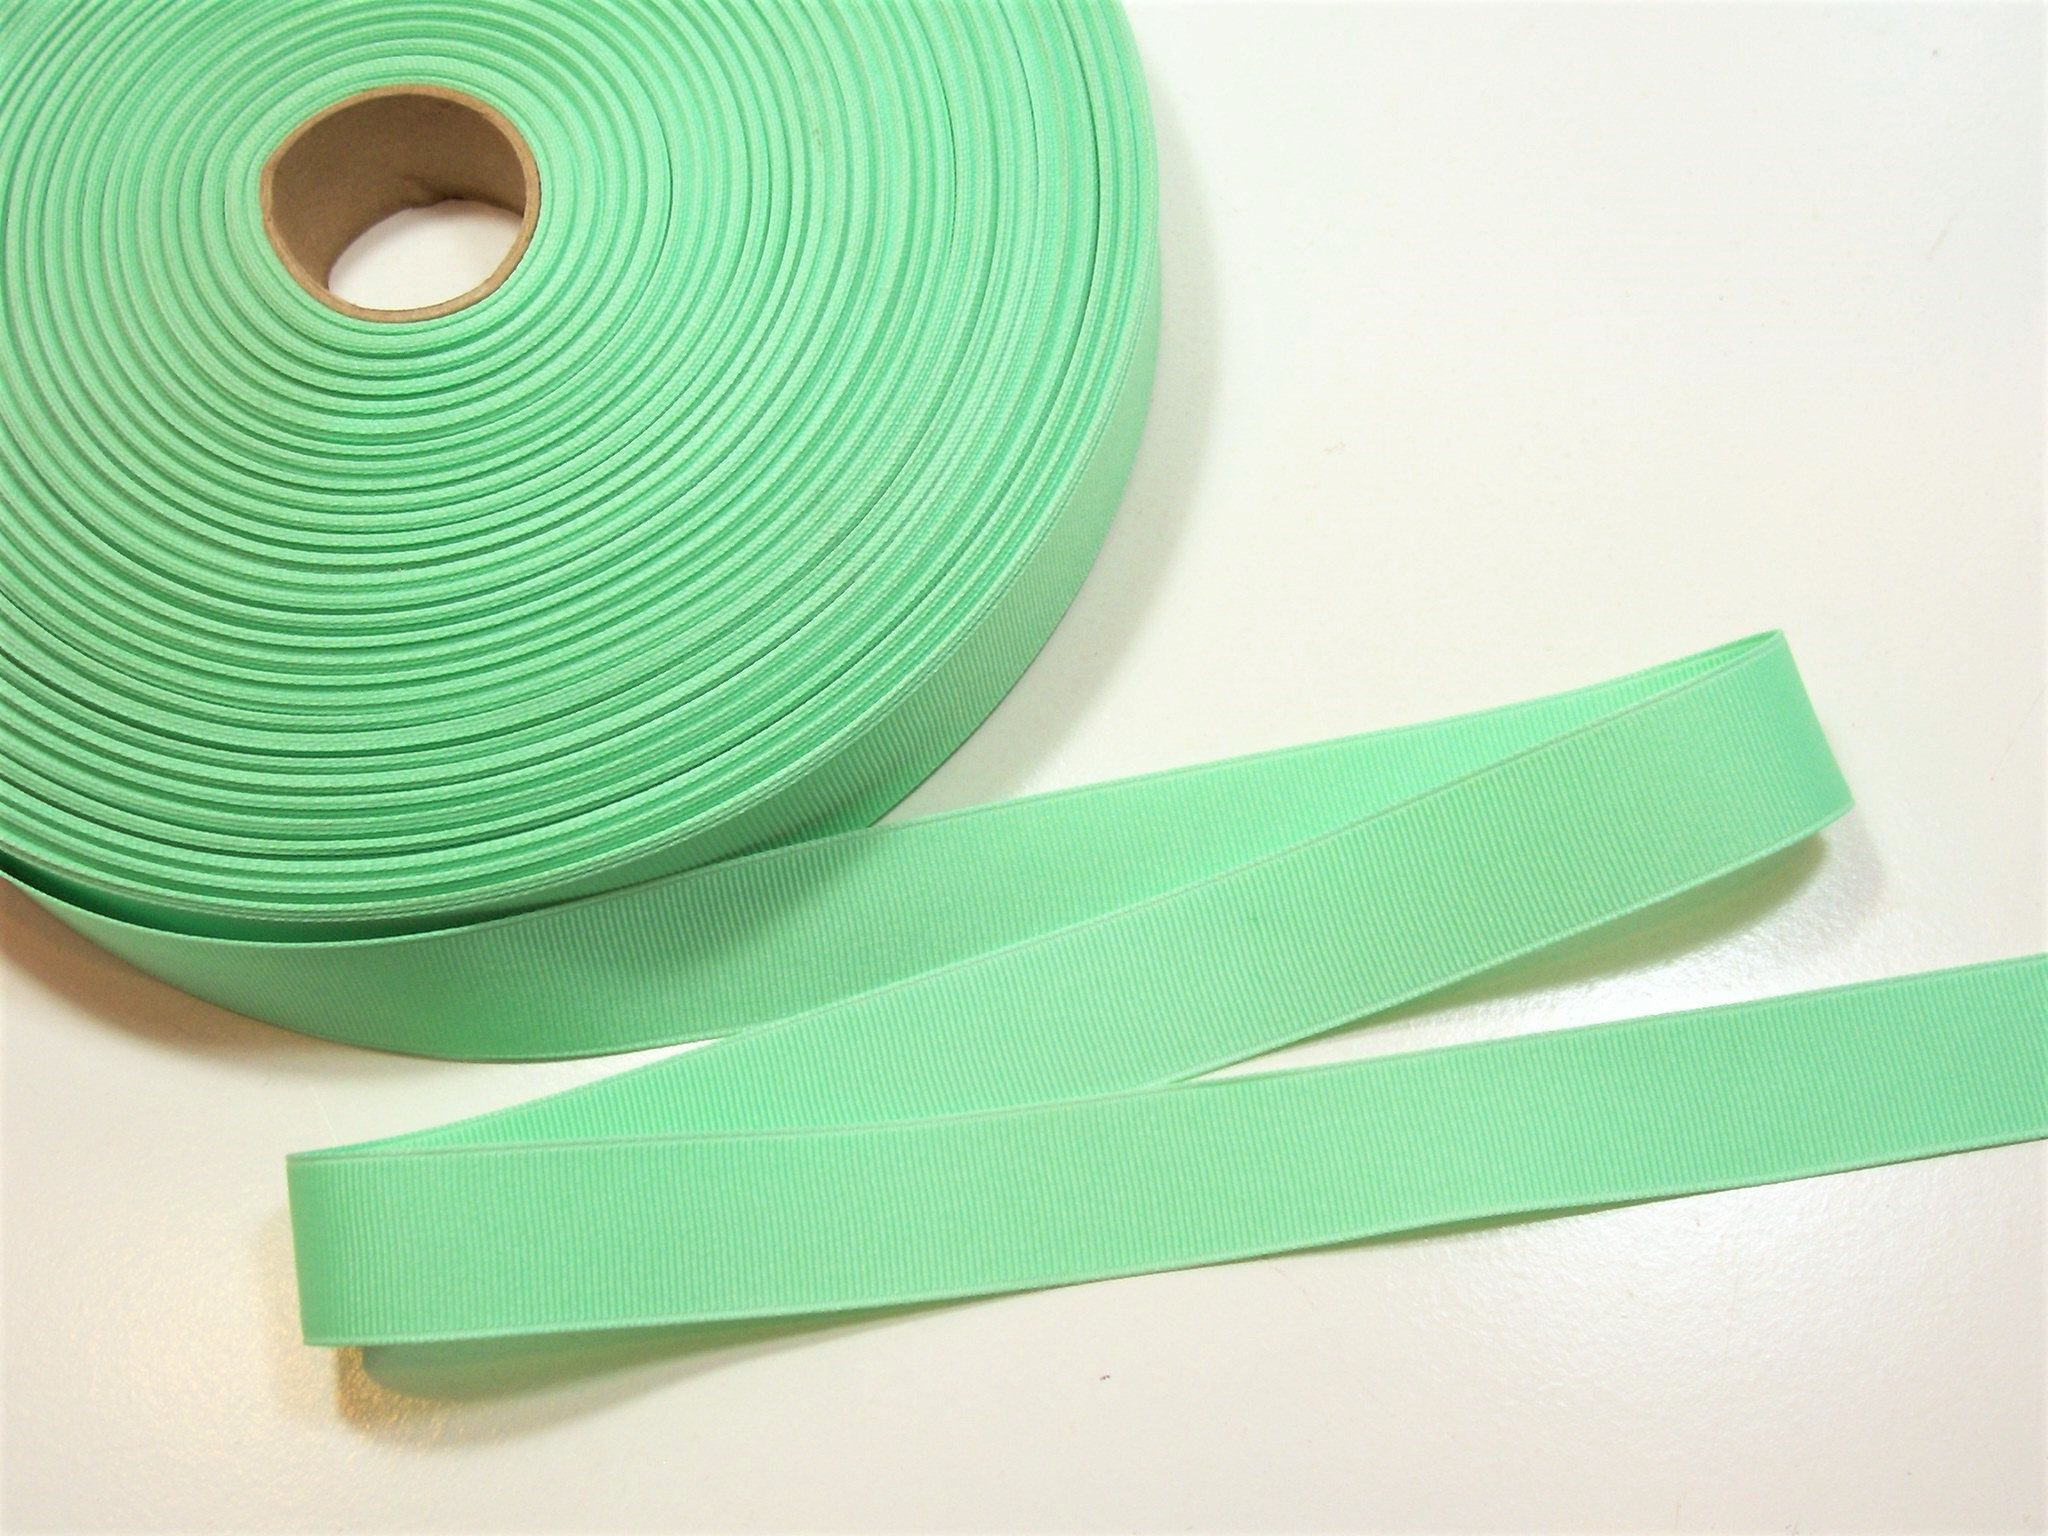 Green Ribbon Mint Green Grosgrain Ribbon 7 8 Inch Wide X 10 Yards In 2020 Green Ribbon Grosgrain Ribbon Grosgrain